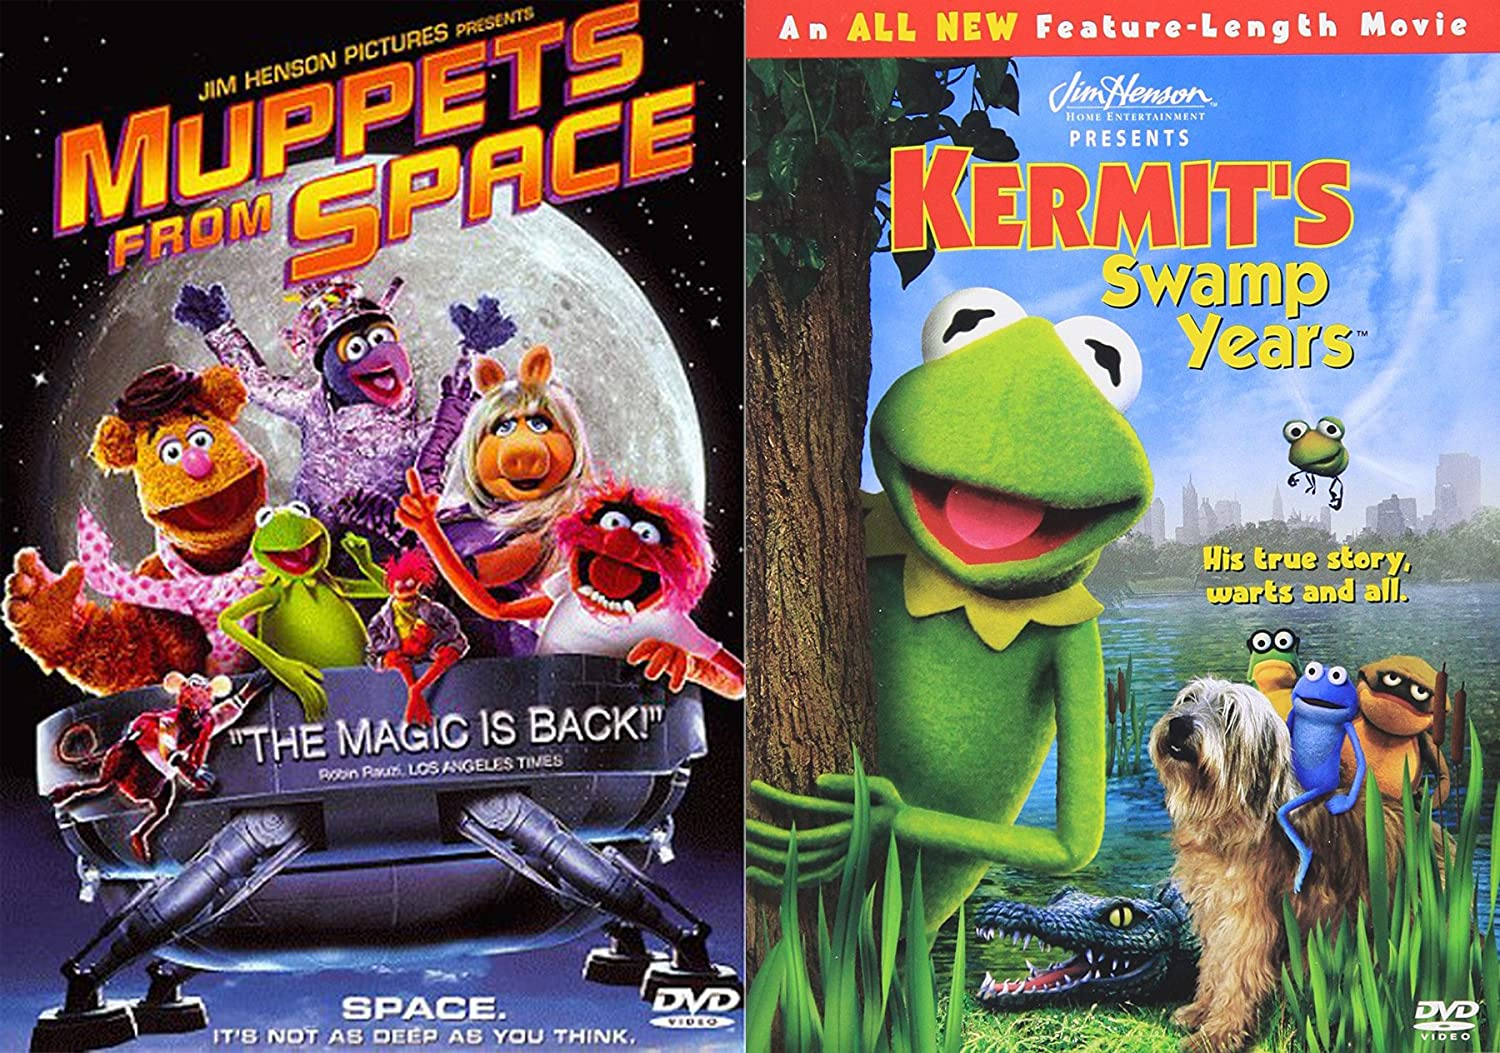 Amazoncom Story Of Kermit The Frog Swamp Years Muppets From